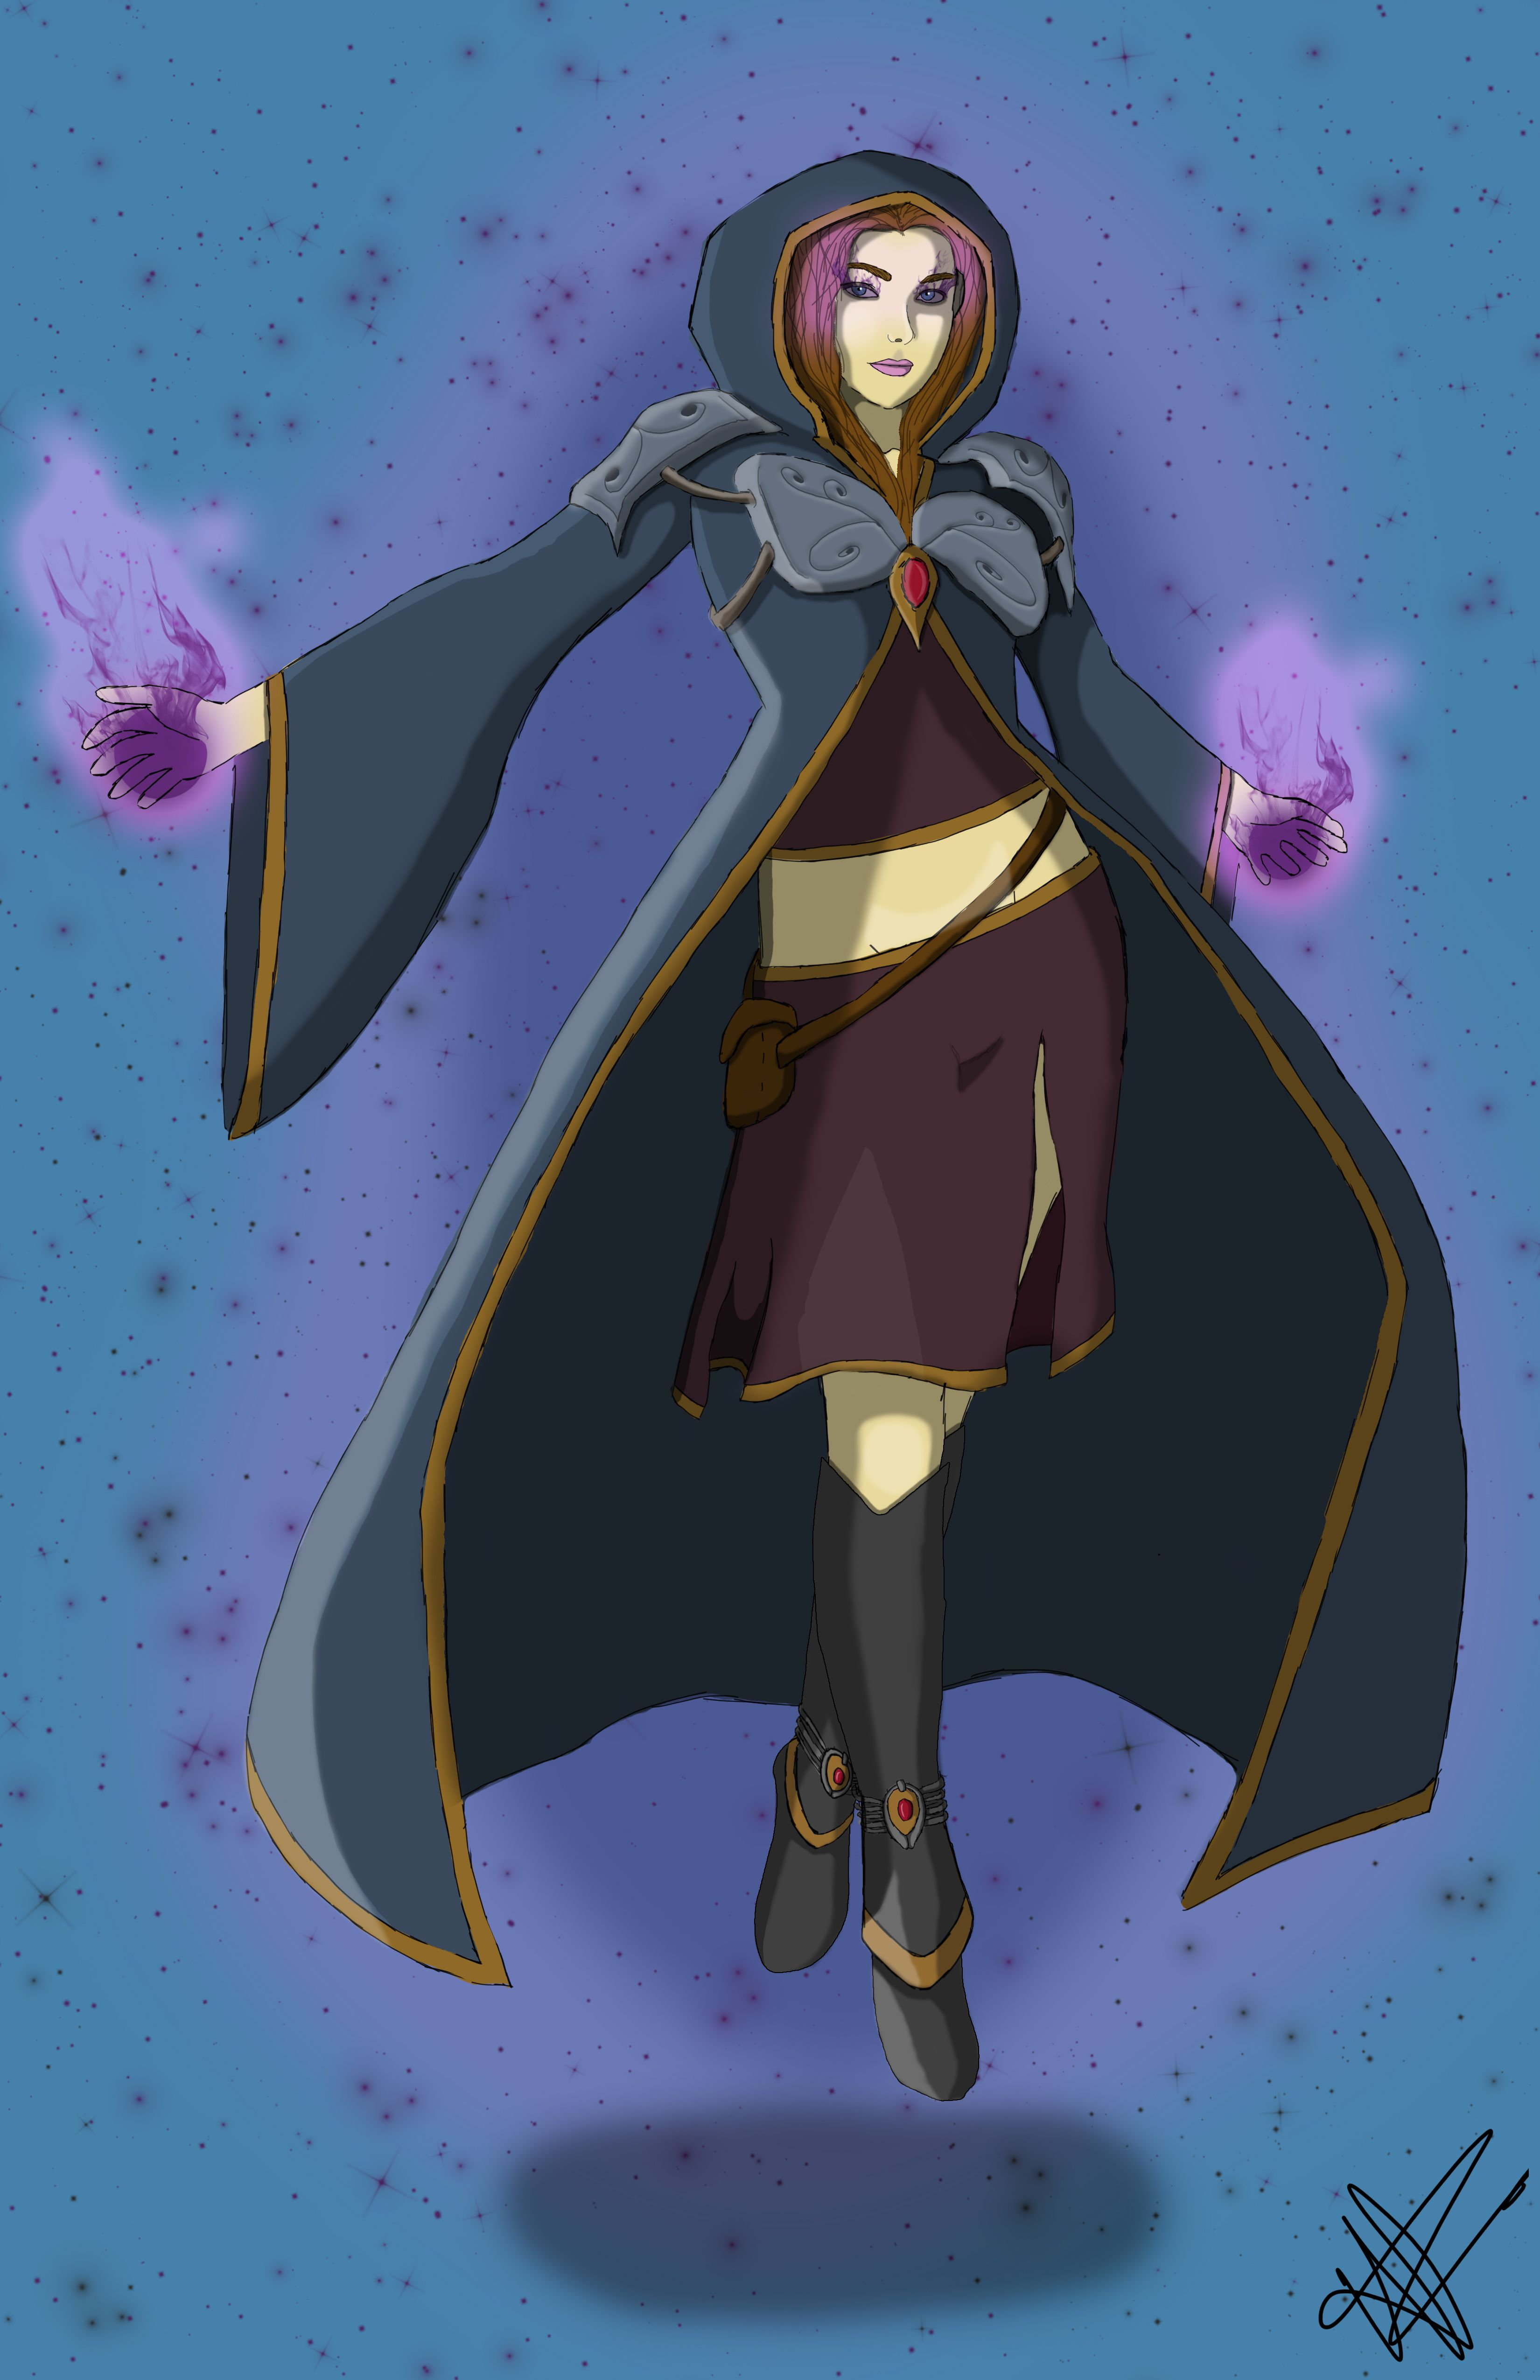 Sorceress by Haley CrowellRodriguez, Art and Animation